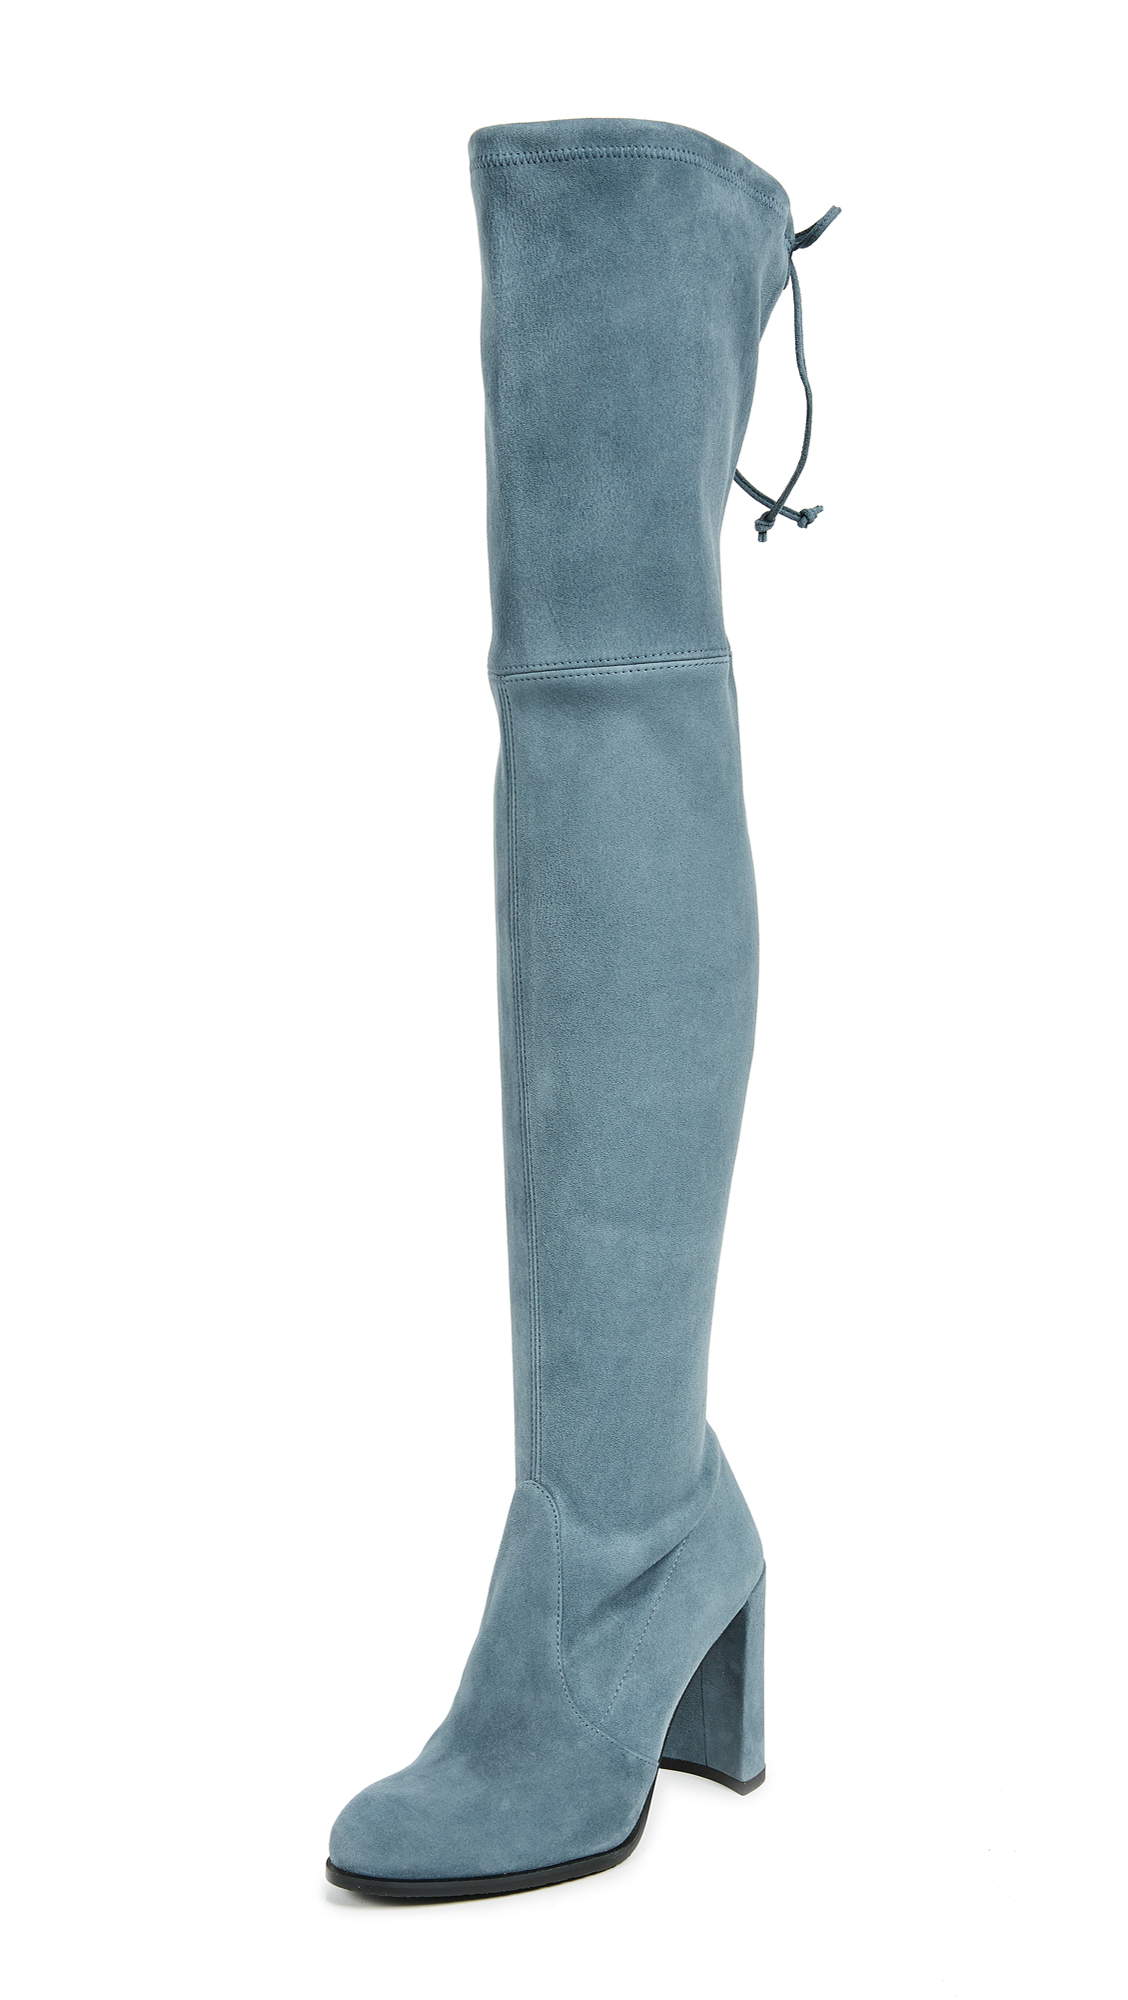 Stuart Weitzman Hiline Thigh High Boots - Denim